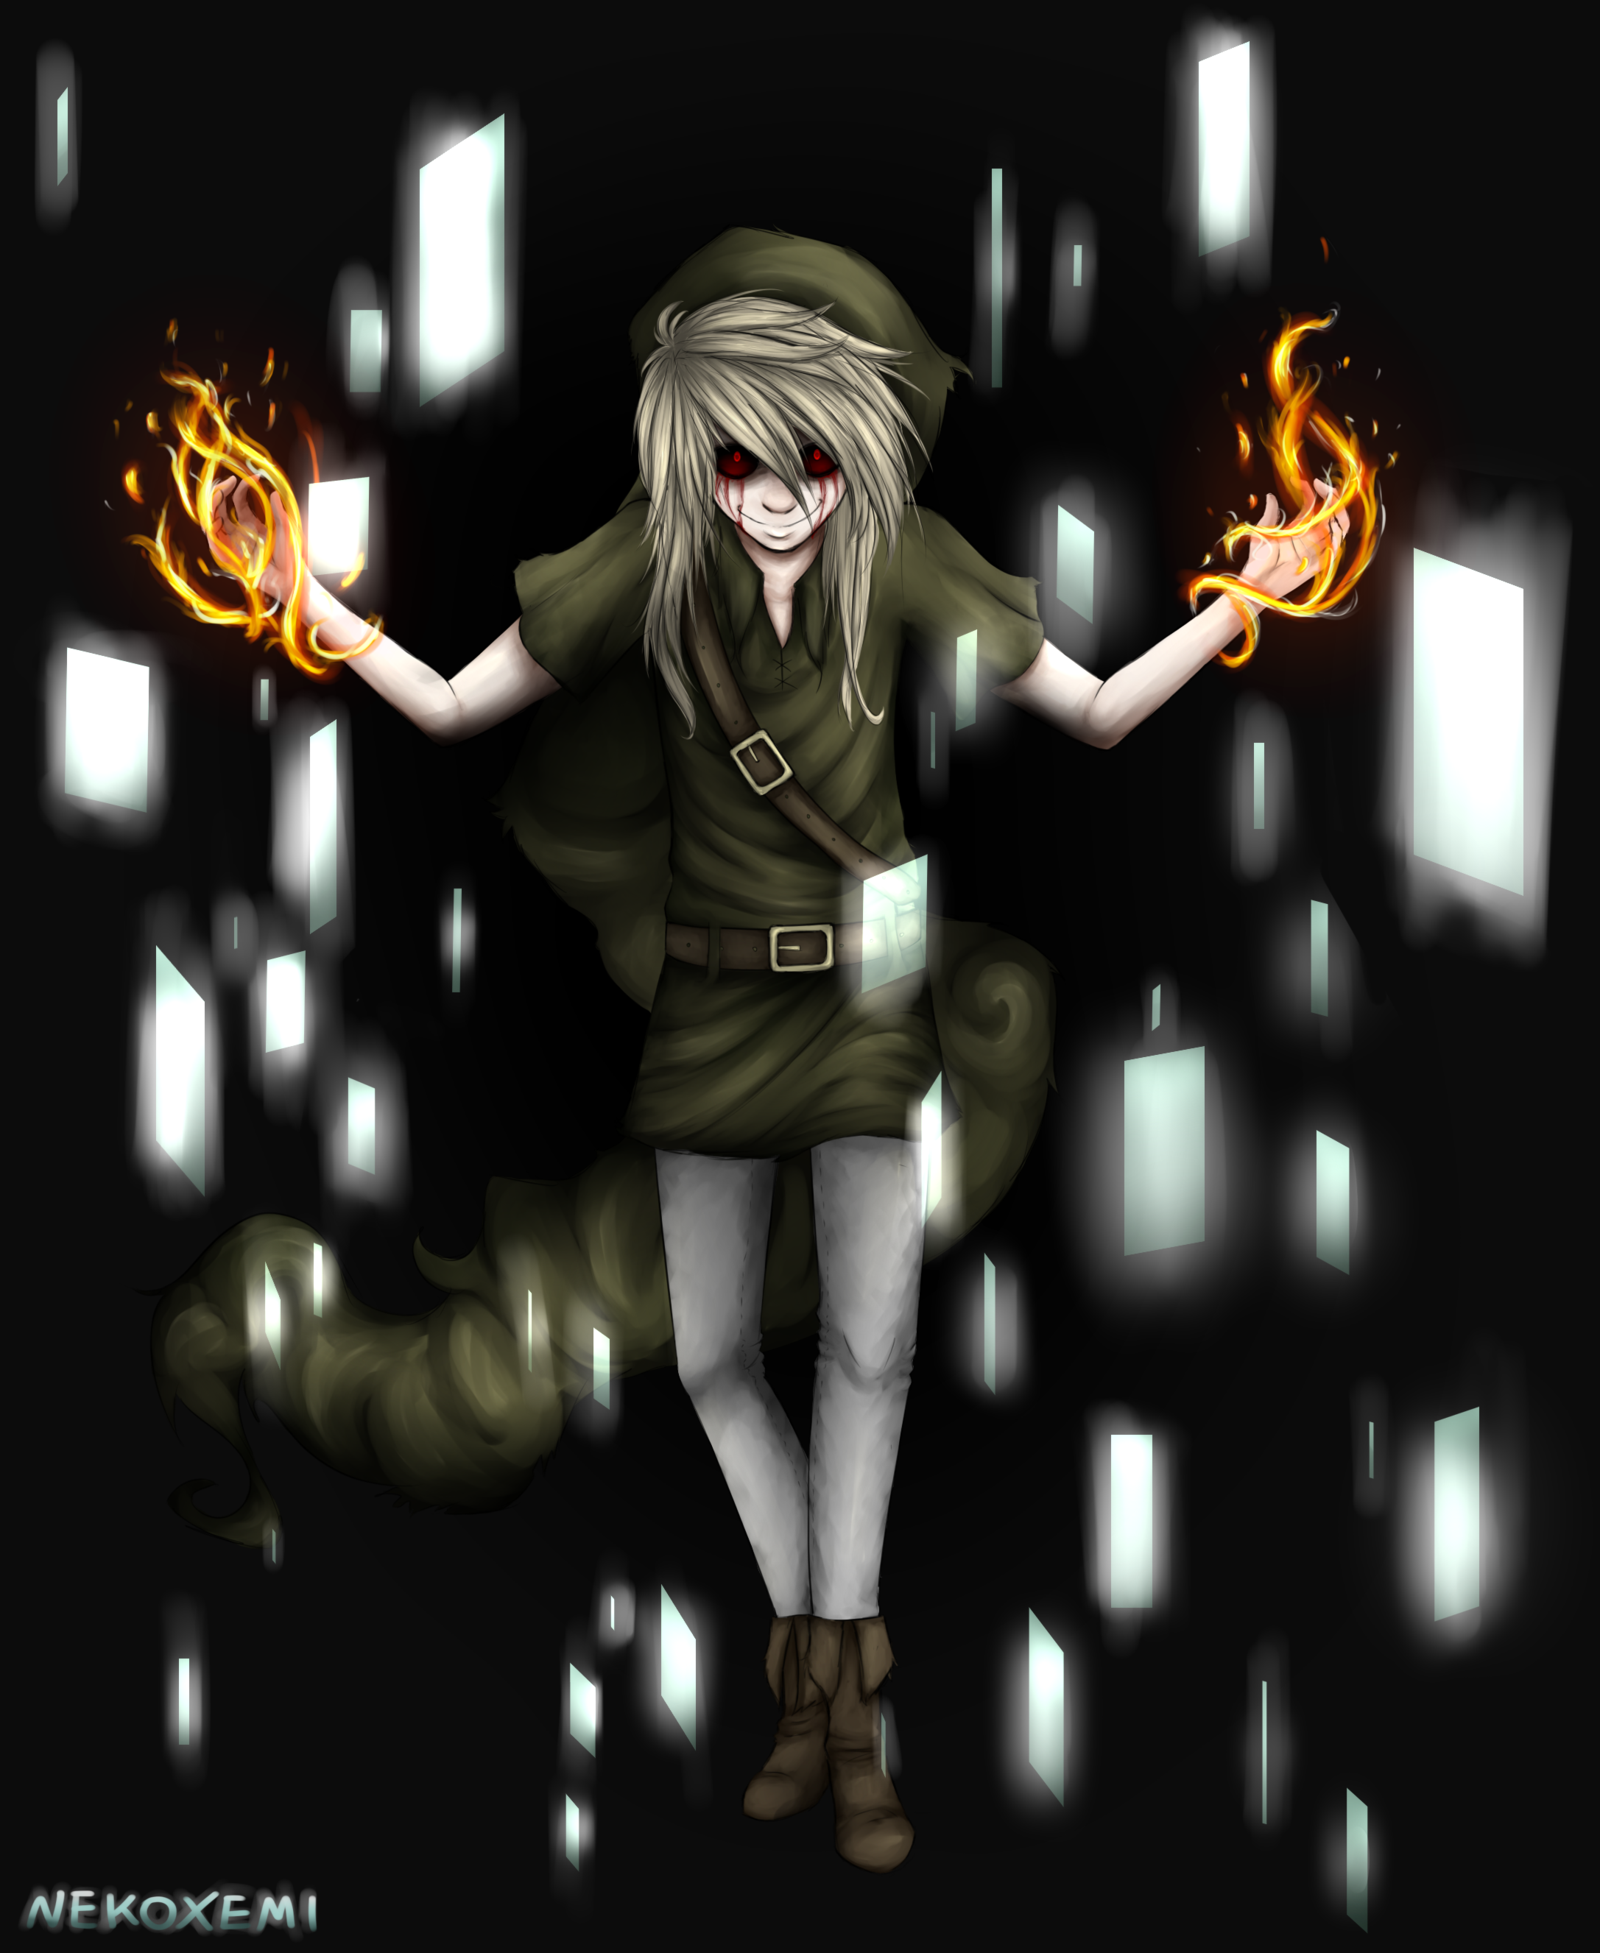 Ben Drowned|What are you doing there ? by NekoXemi.deviantart.com on @deviantART